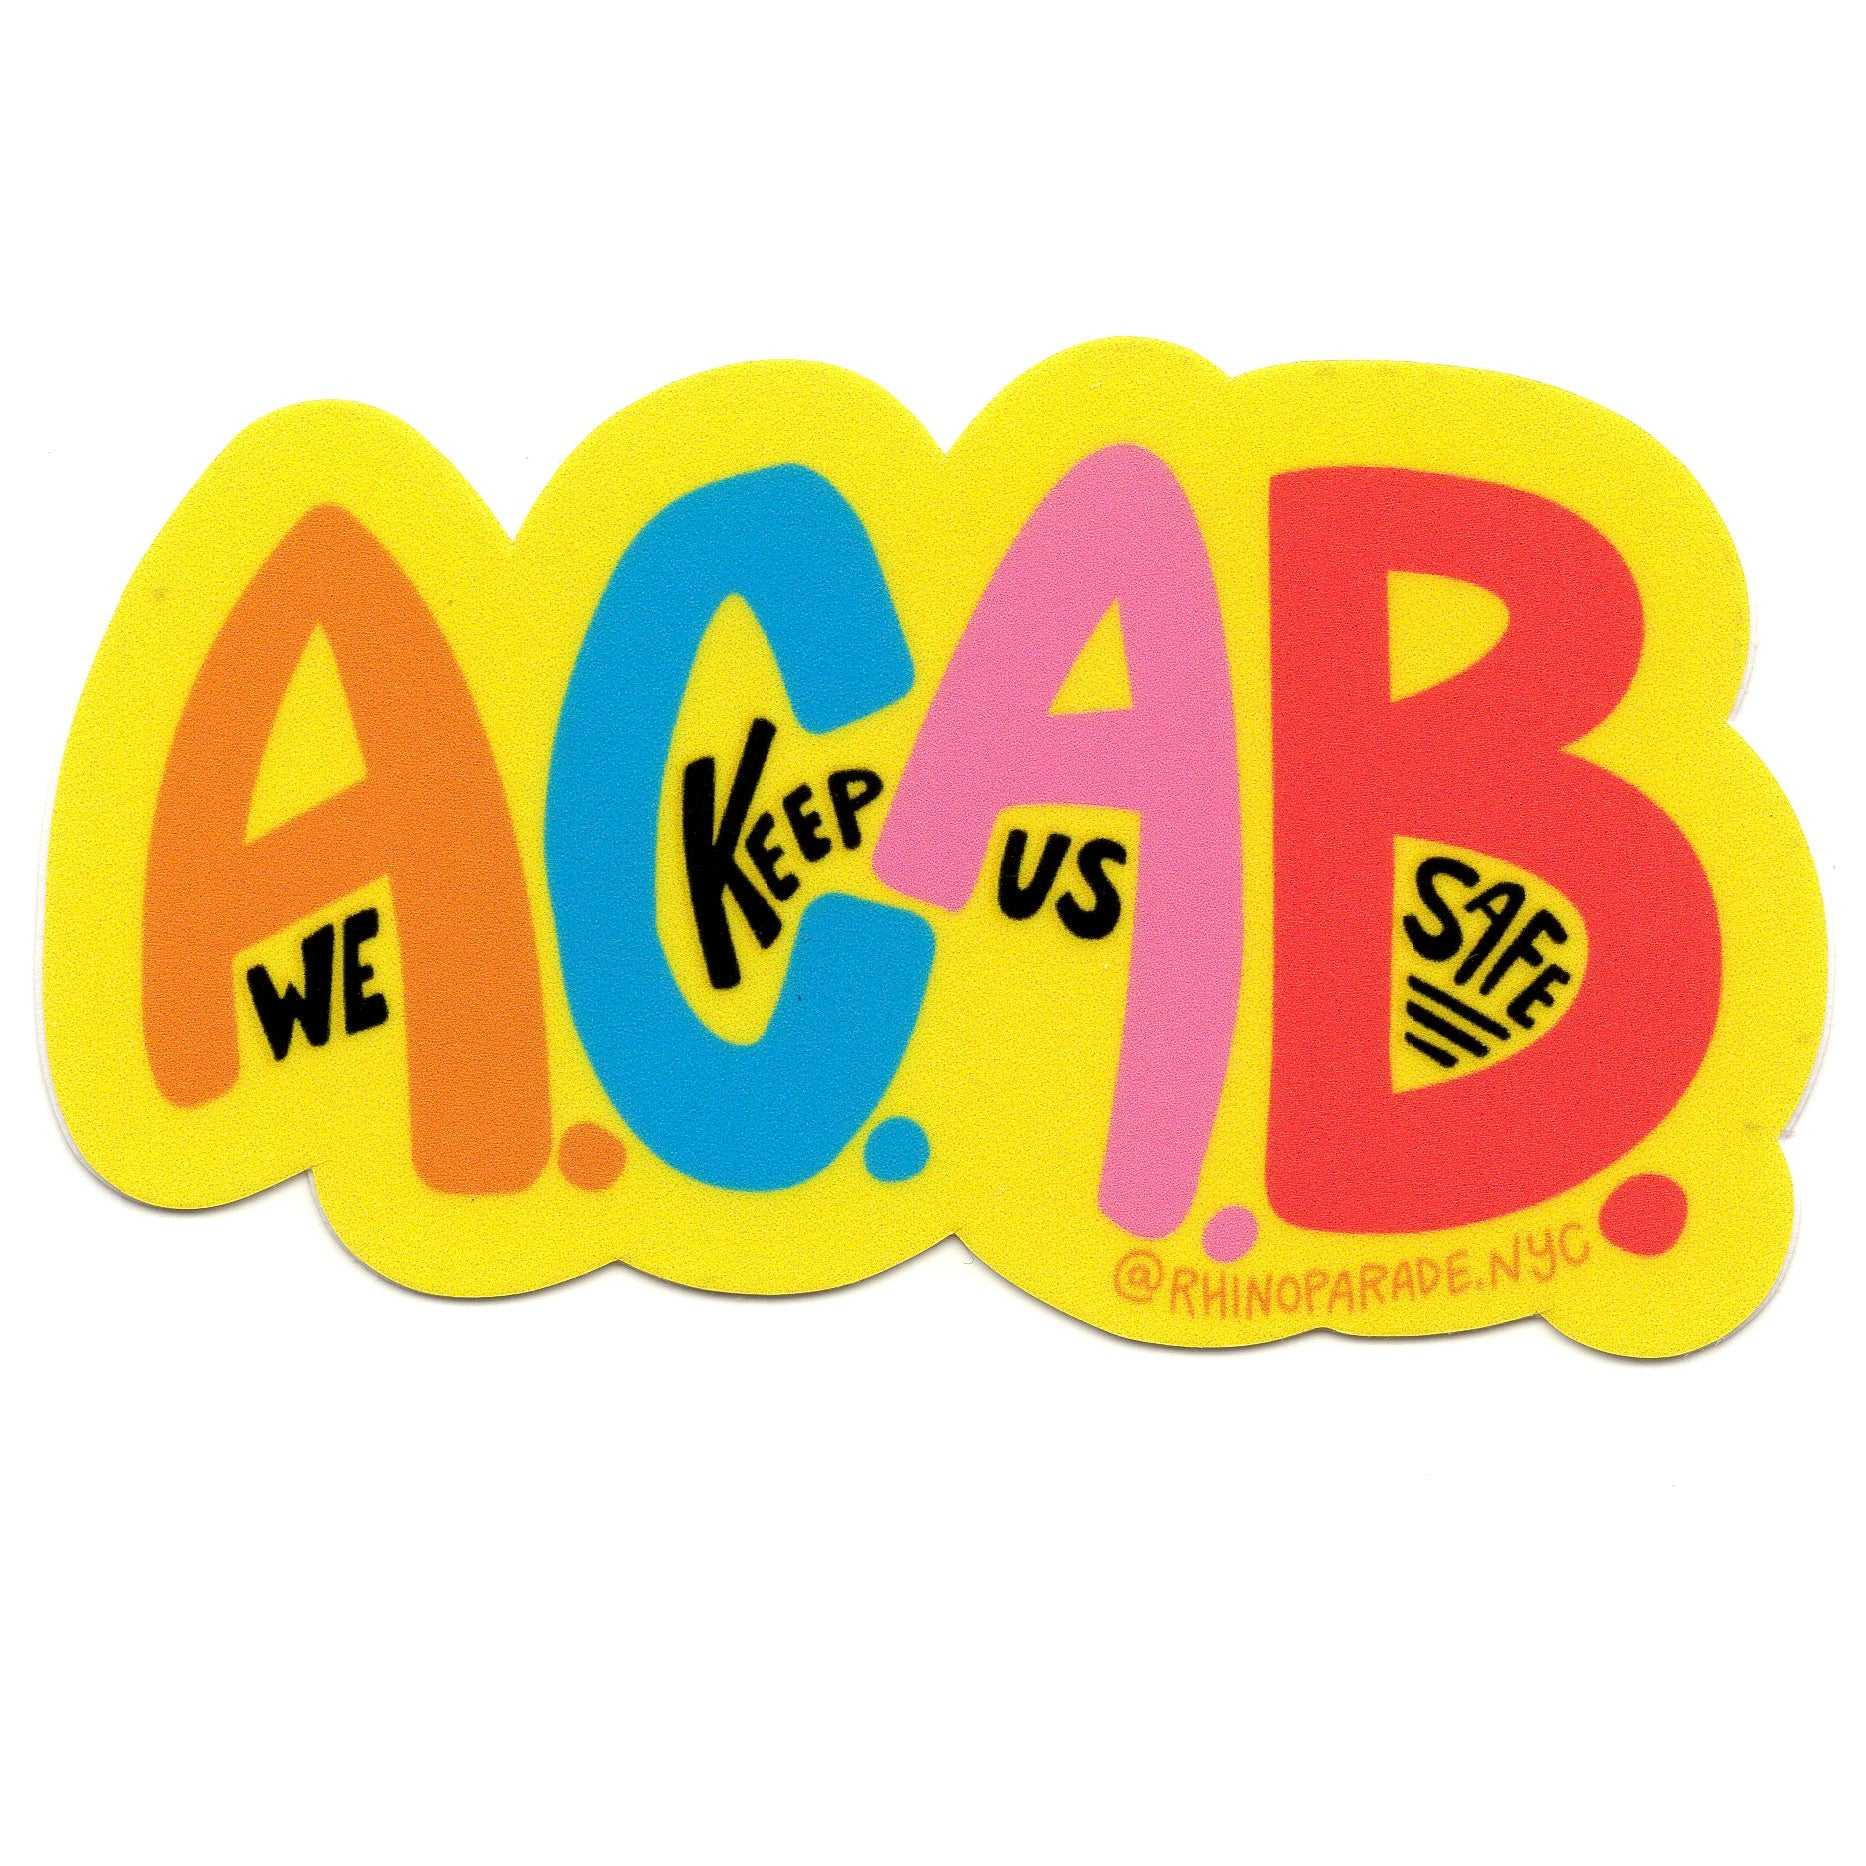 ACAB Sticker